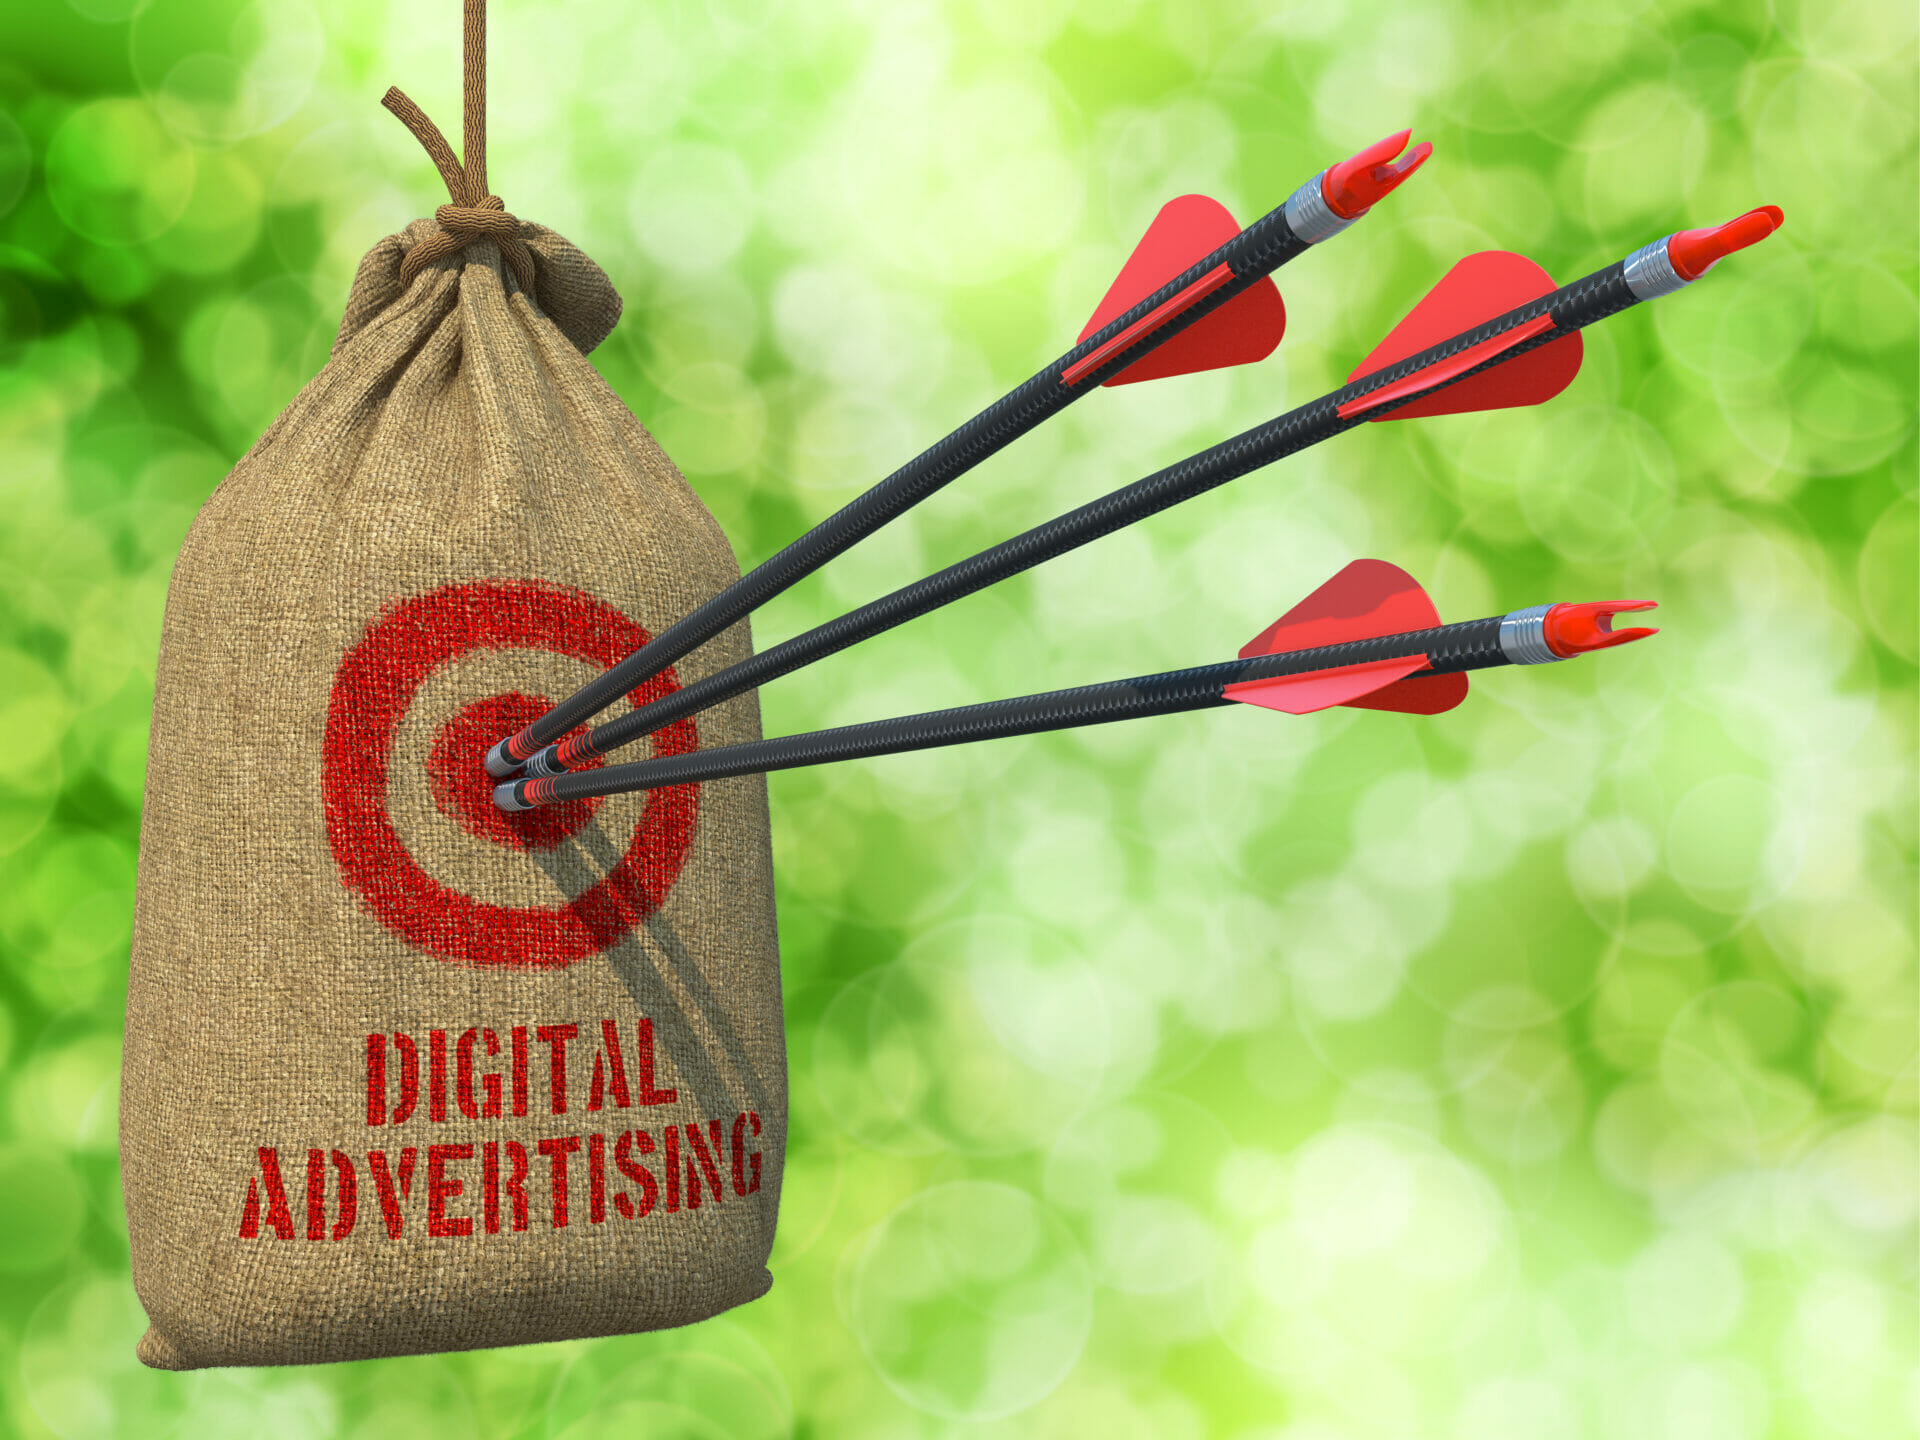 Top 5 Paid Online Advertising Strategies